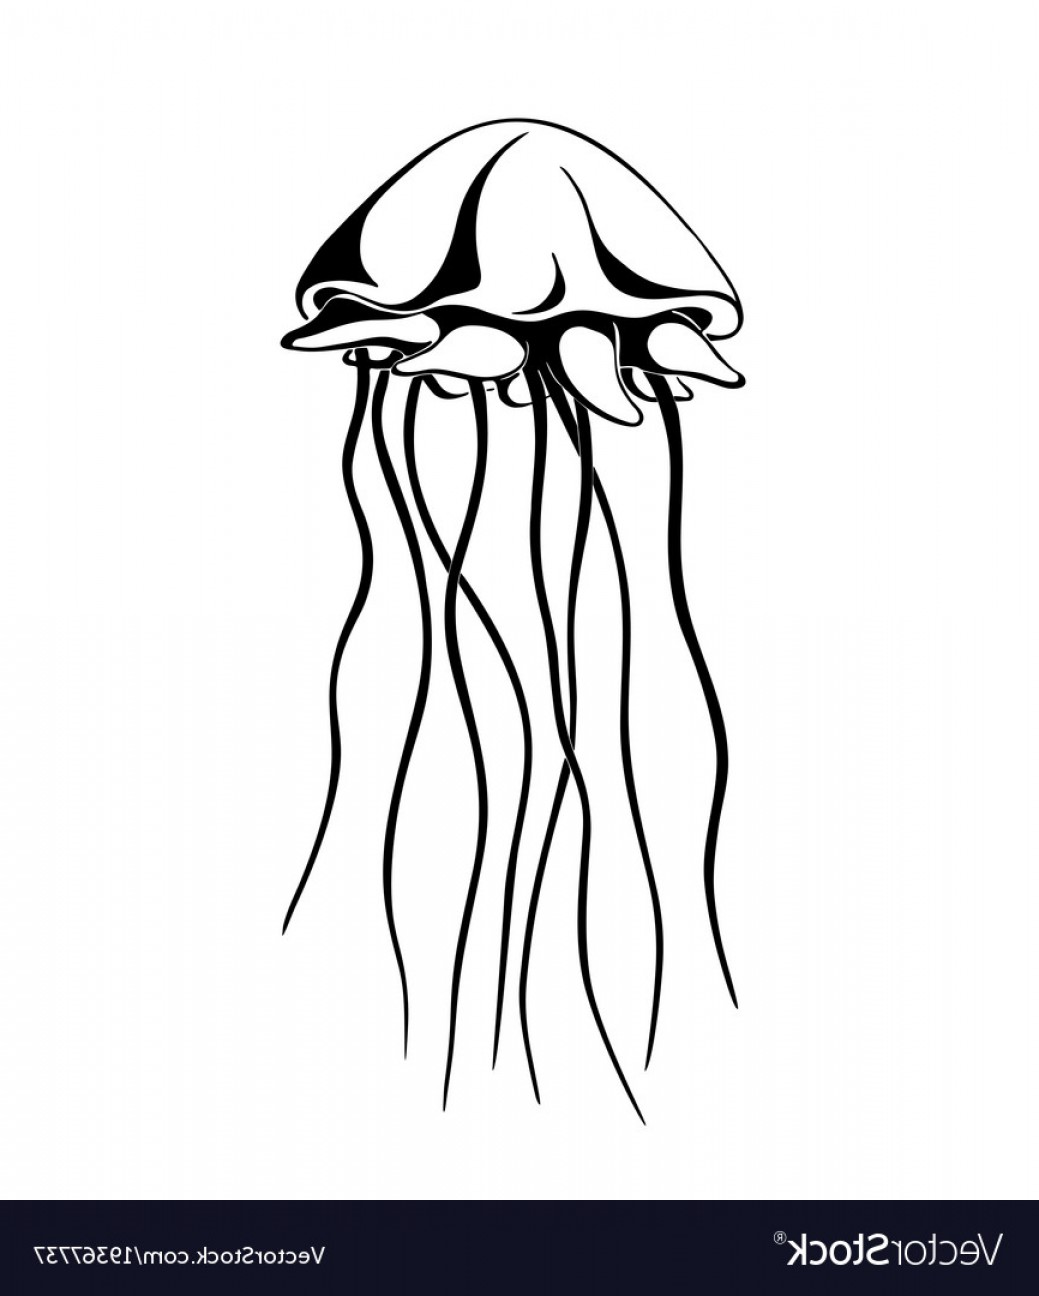 Jelly Fish Graphic Vector: Jellyfish Ink Hand Drawn Vector